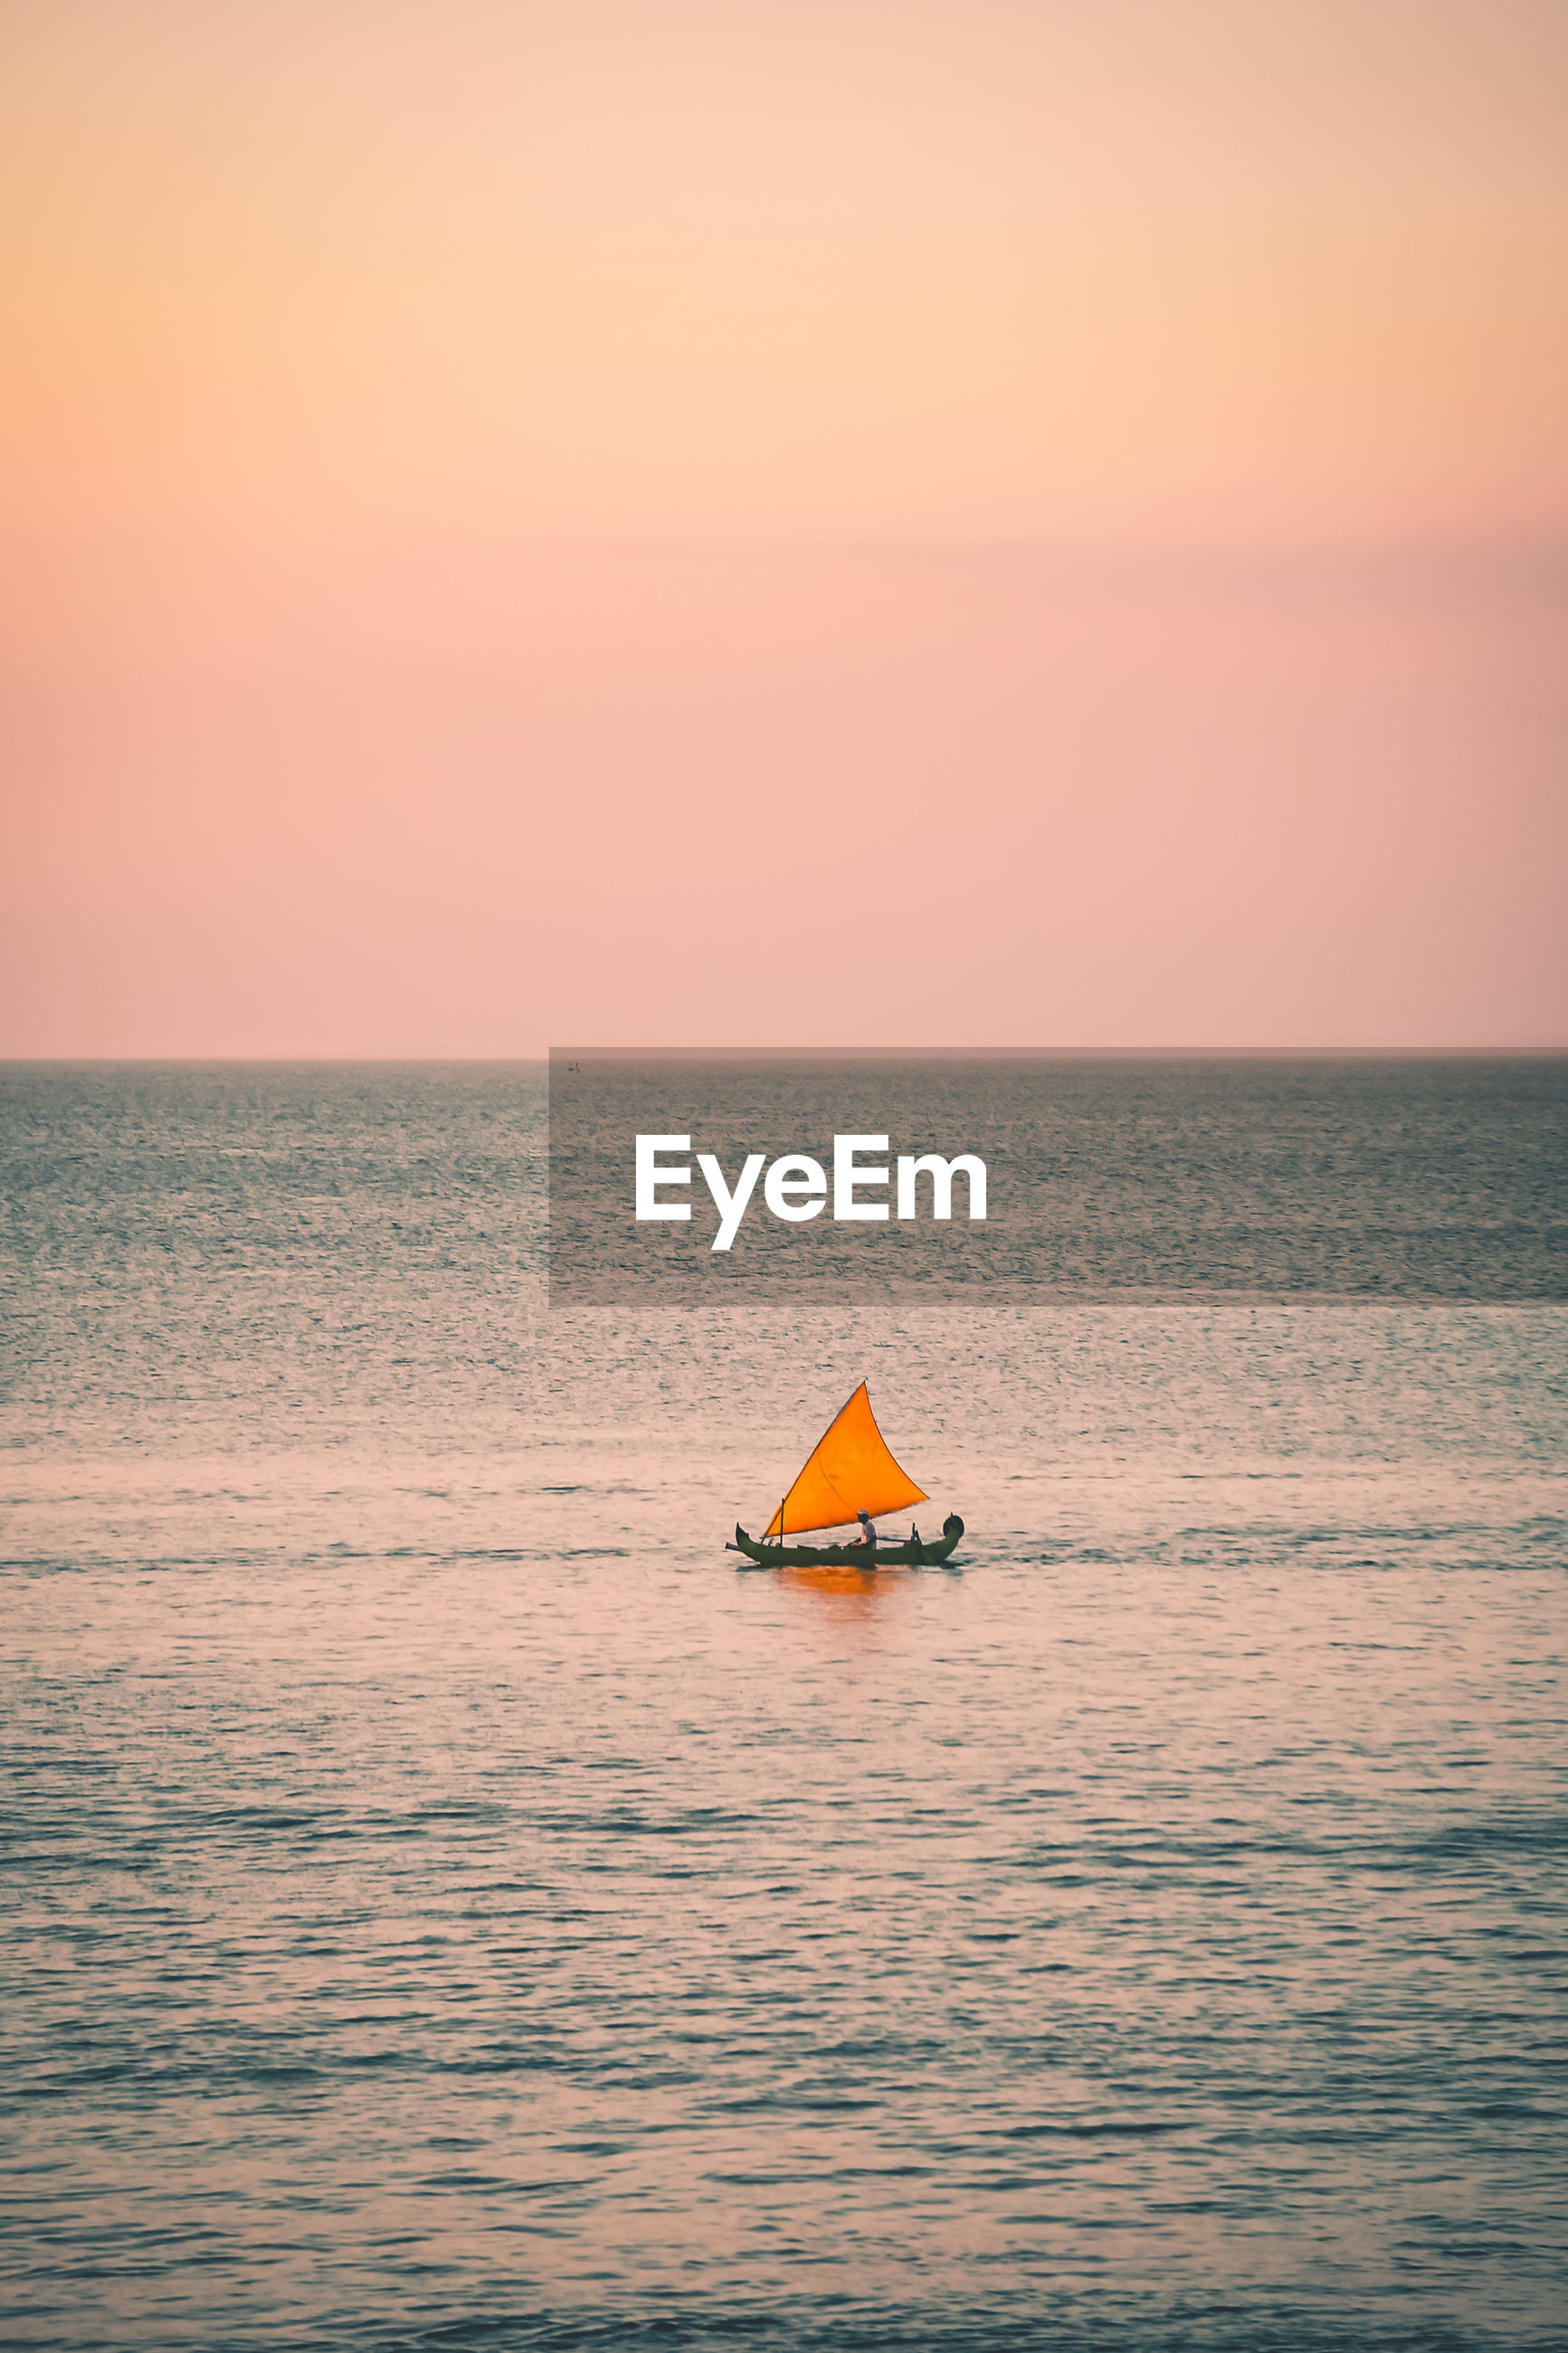 Distant view of man sailing boat in sea against orange sky